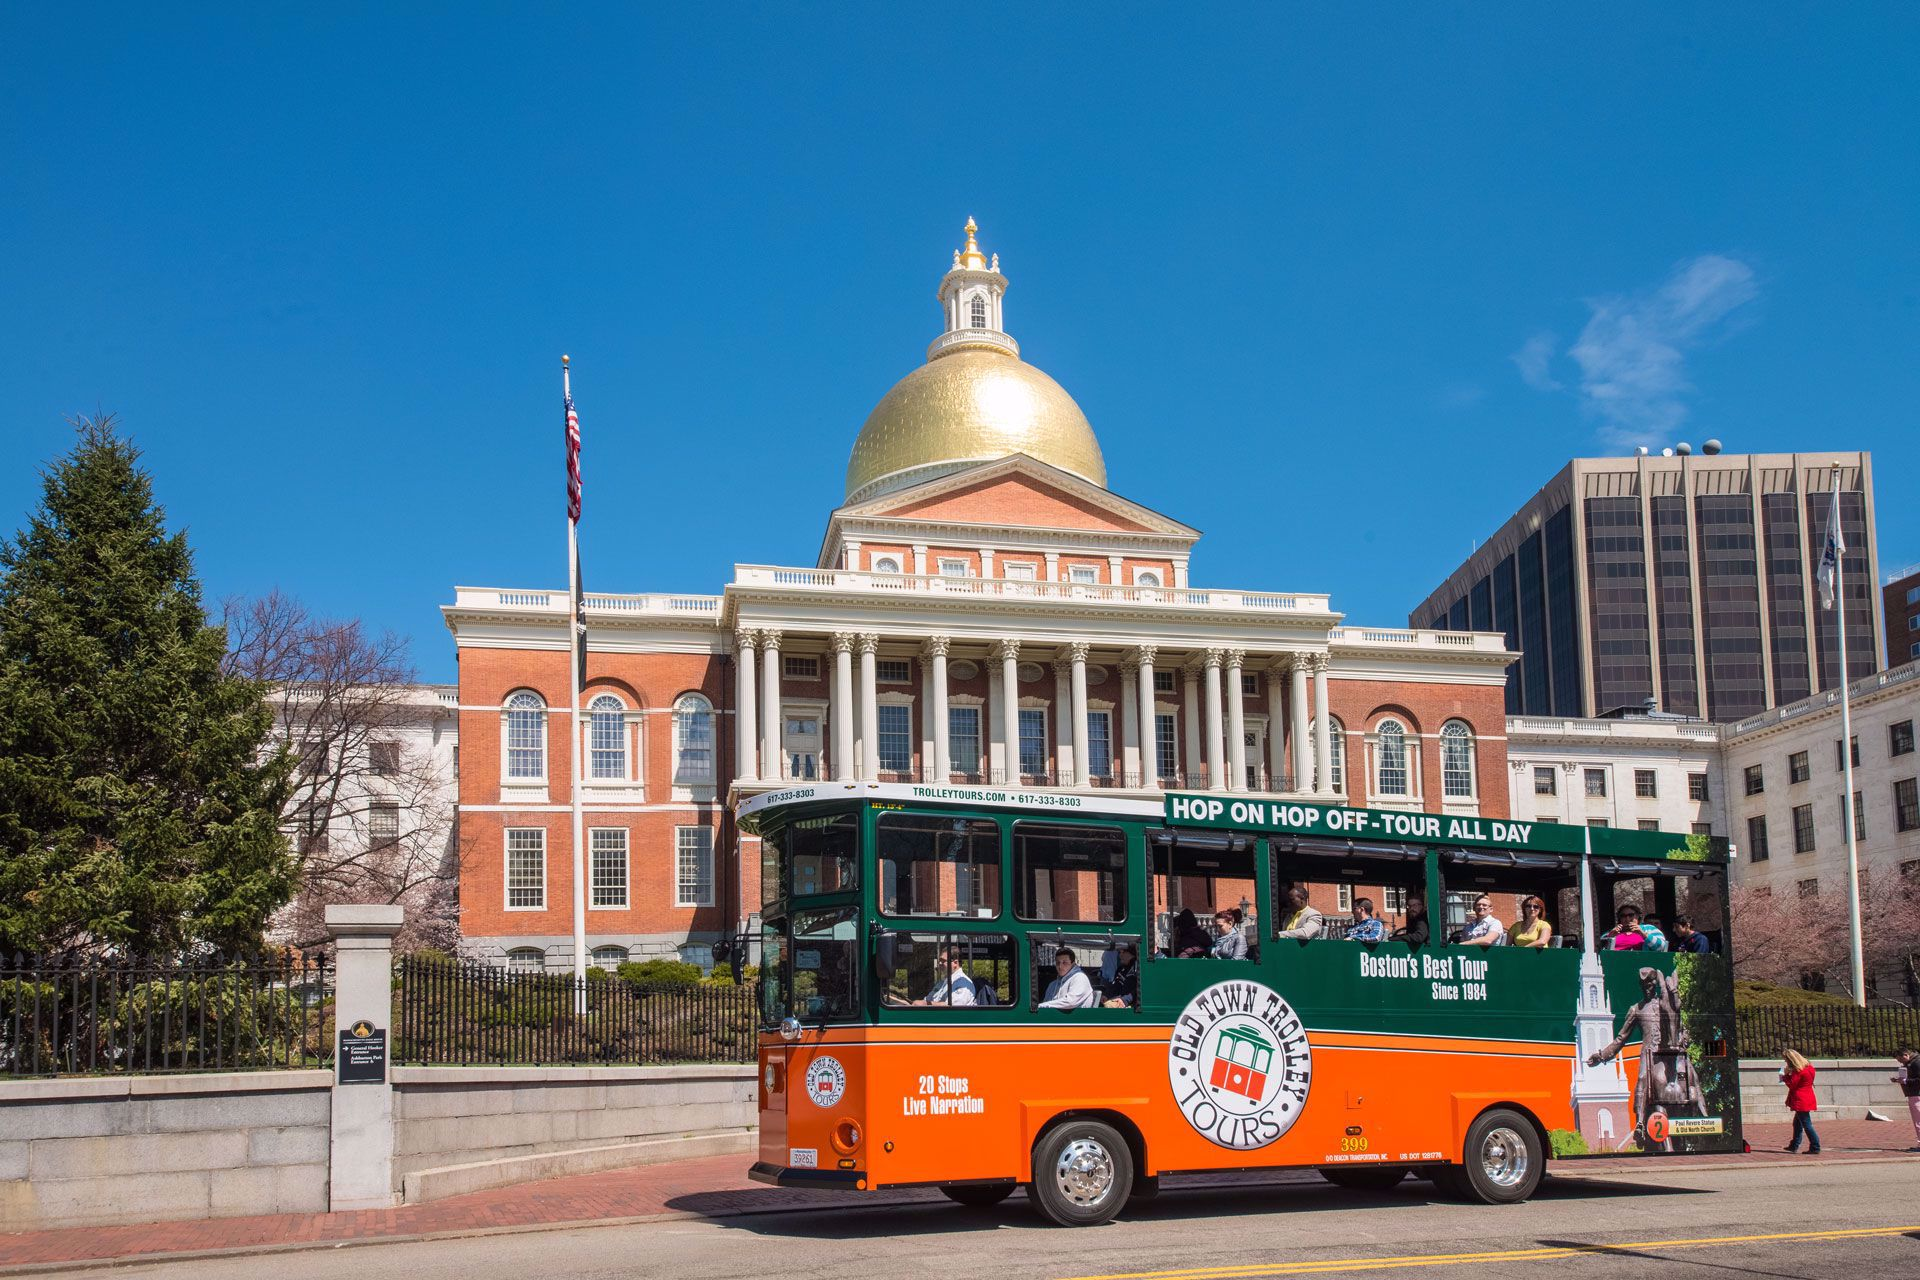 Boston Old Town Trolley Tours